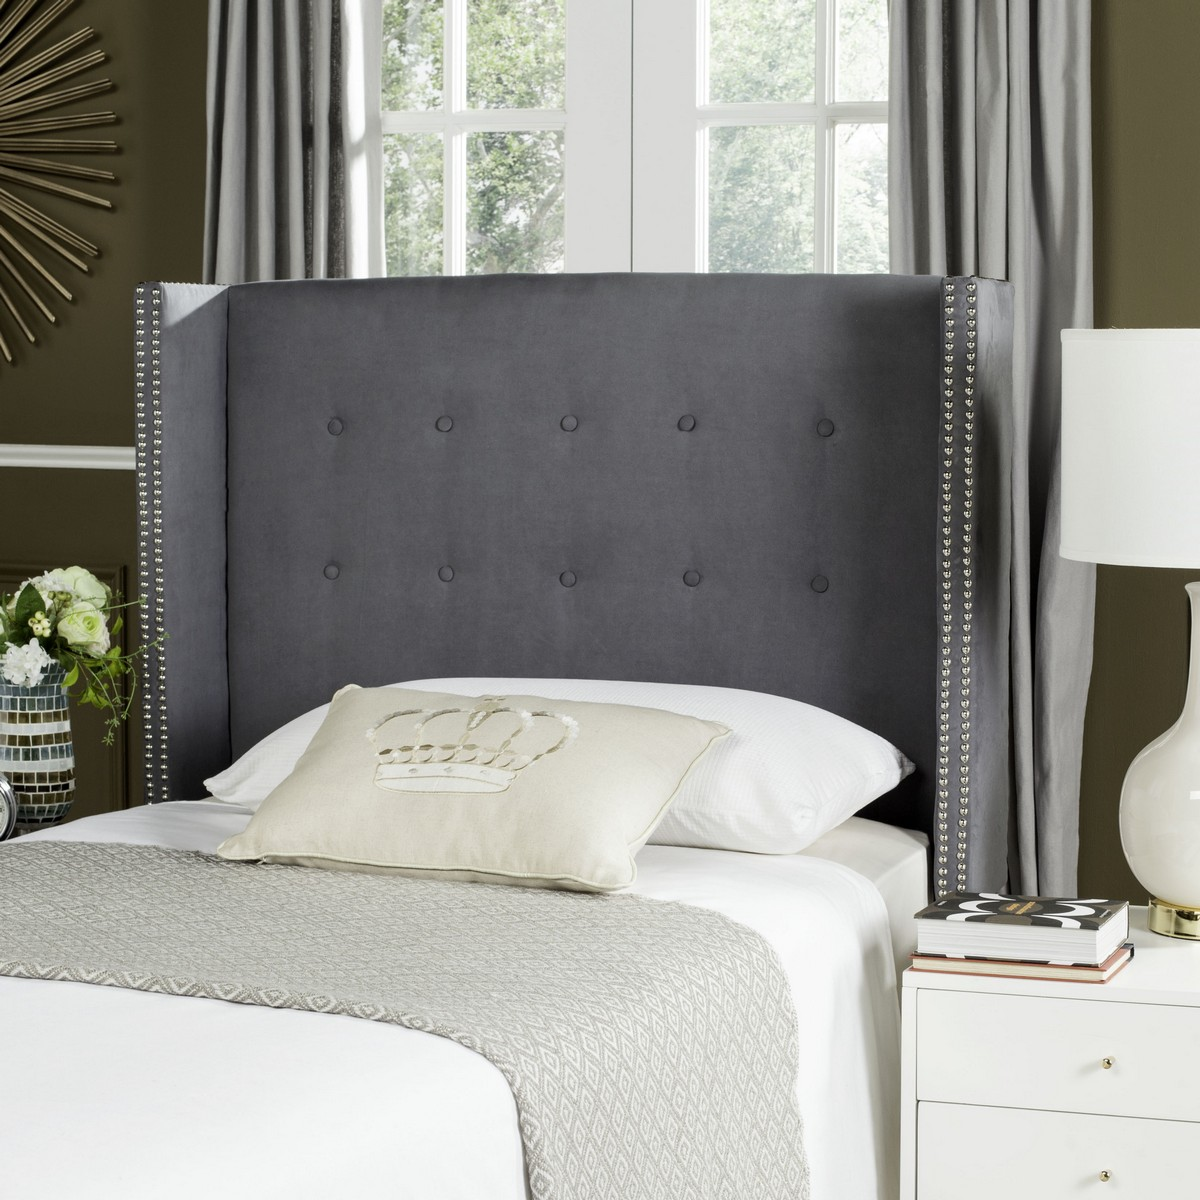 double elegant iona starting winged from headboard style headboards